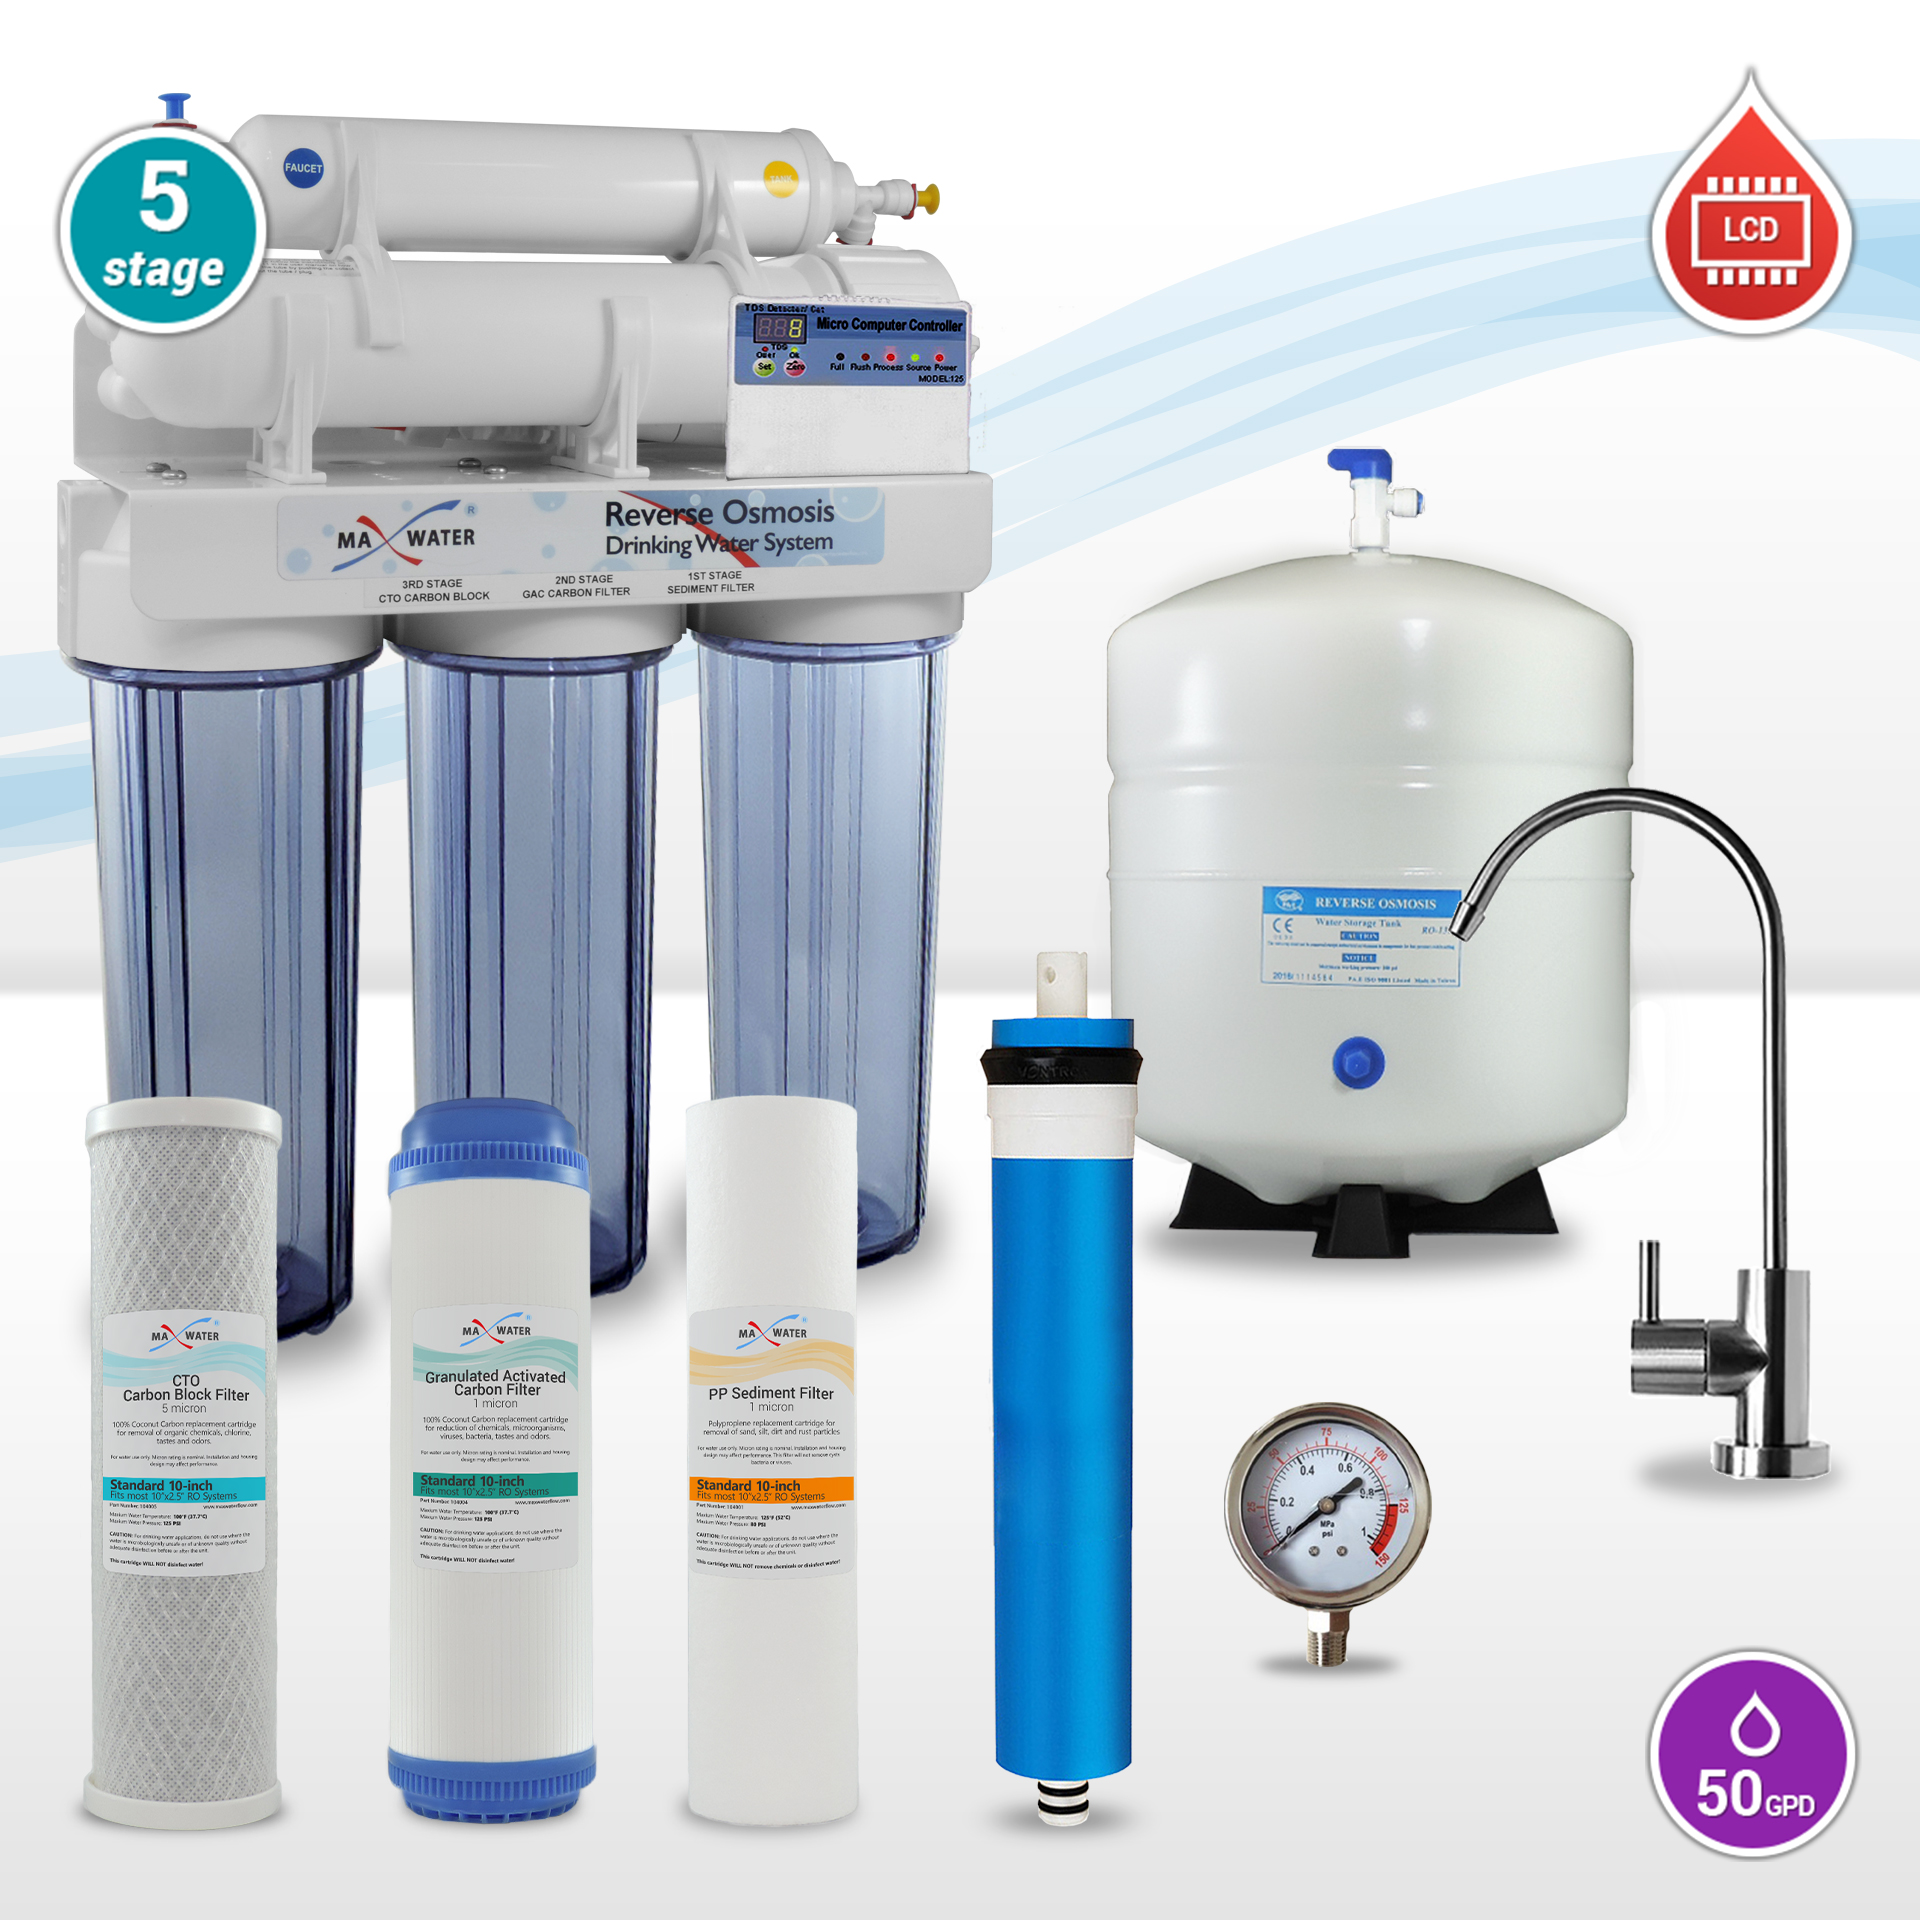 5 Stage Lcd Reverse Osmosis System Automatic Self Flushing